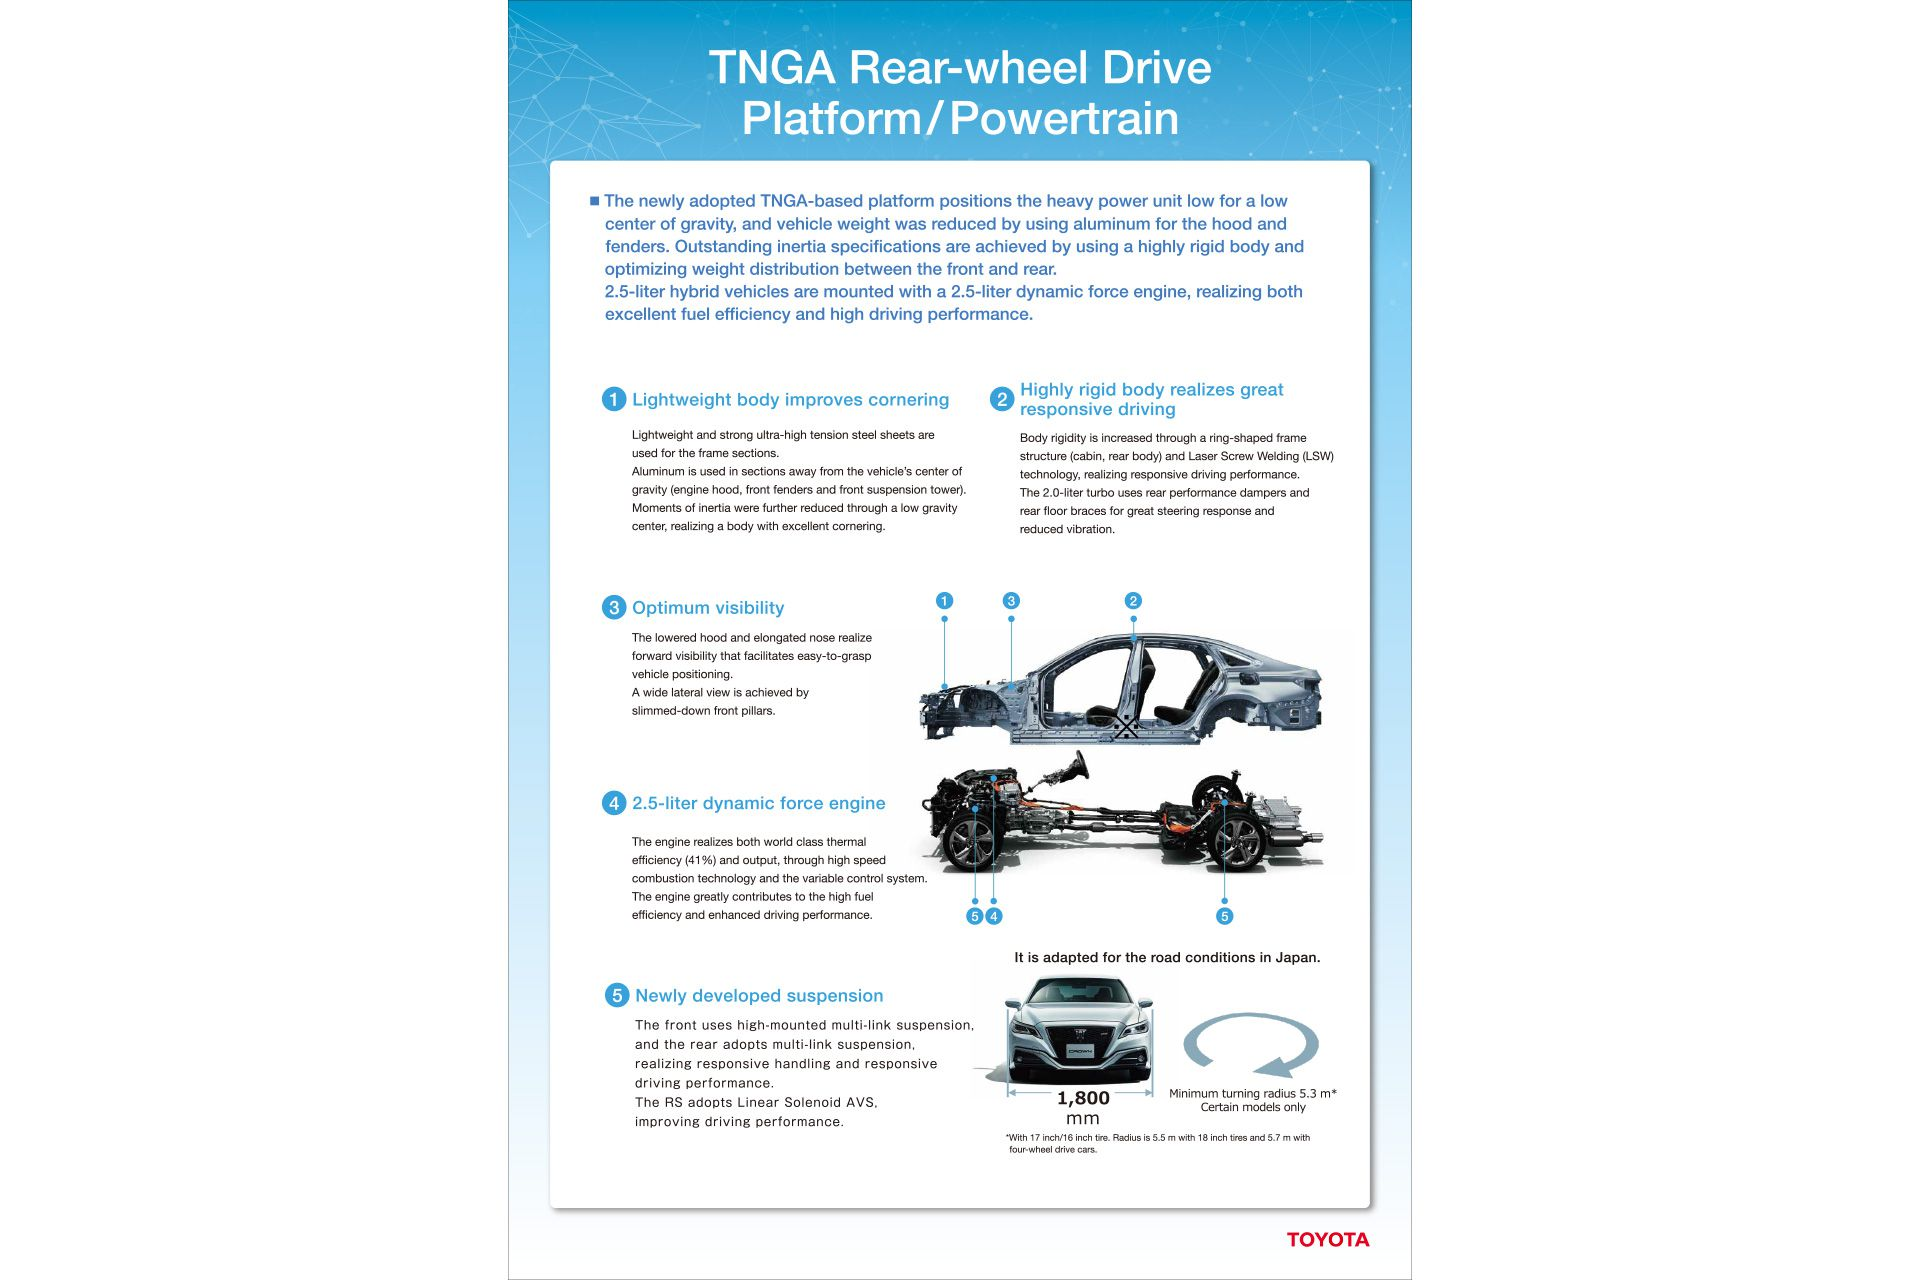 TNGA Rear-wheel Drive Platform / Powertrain